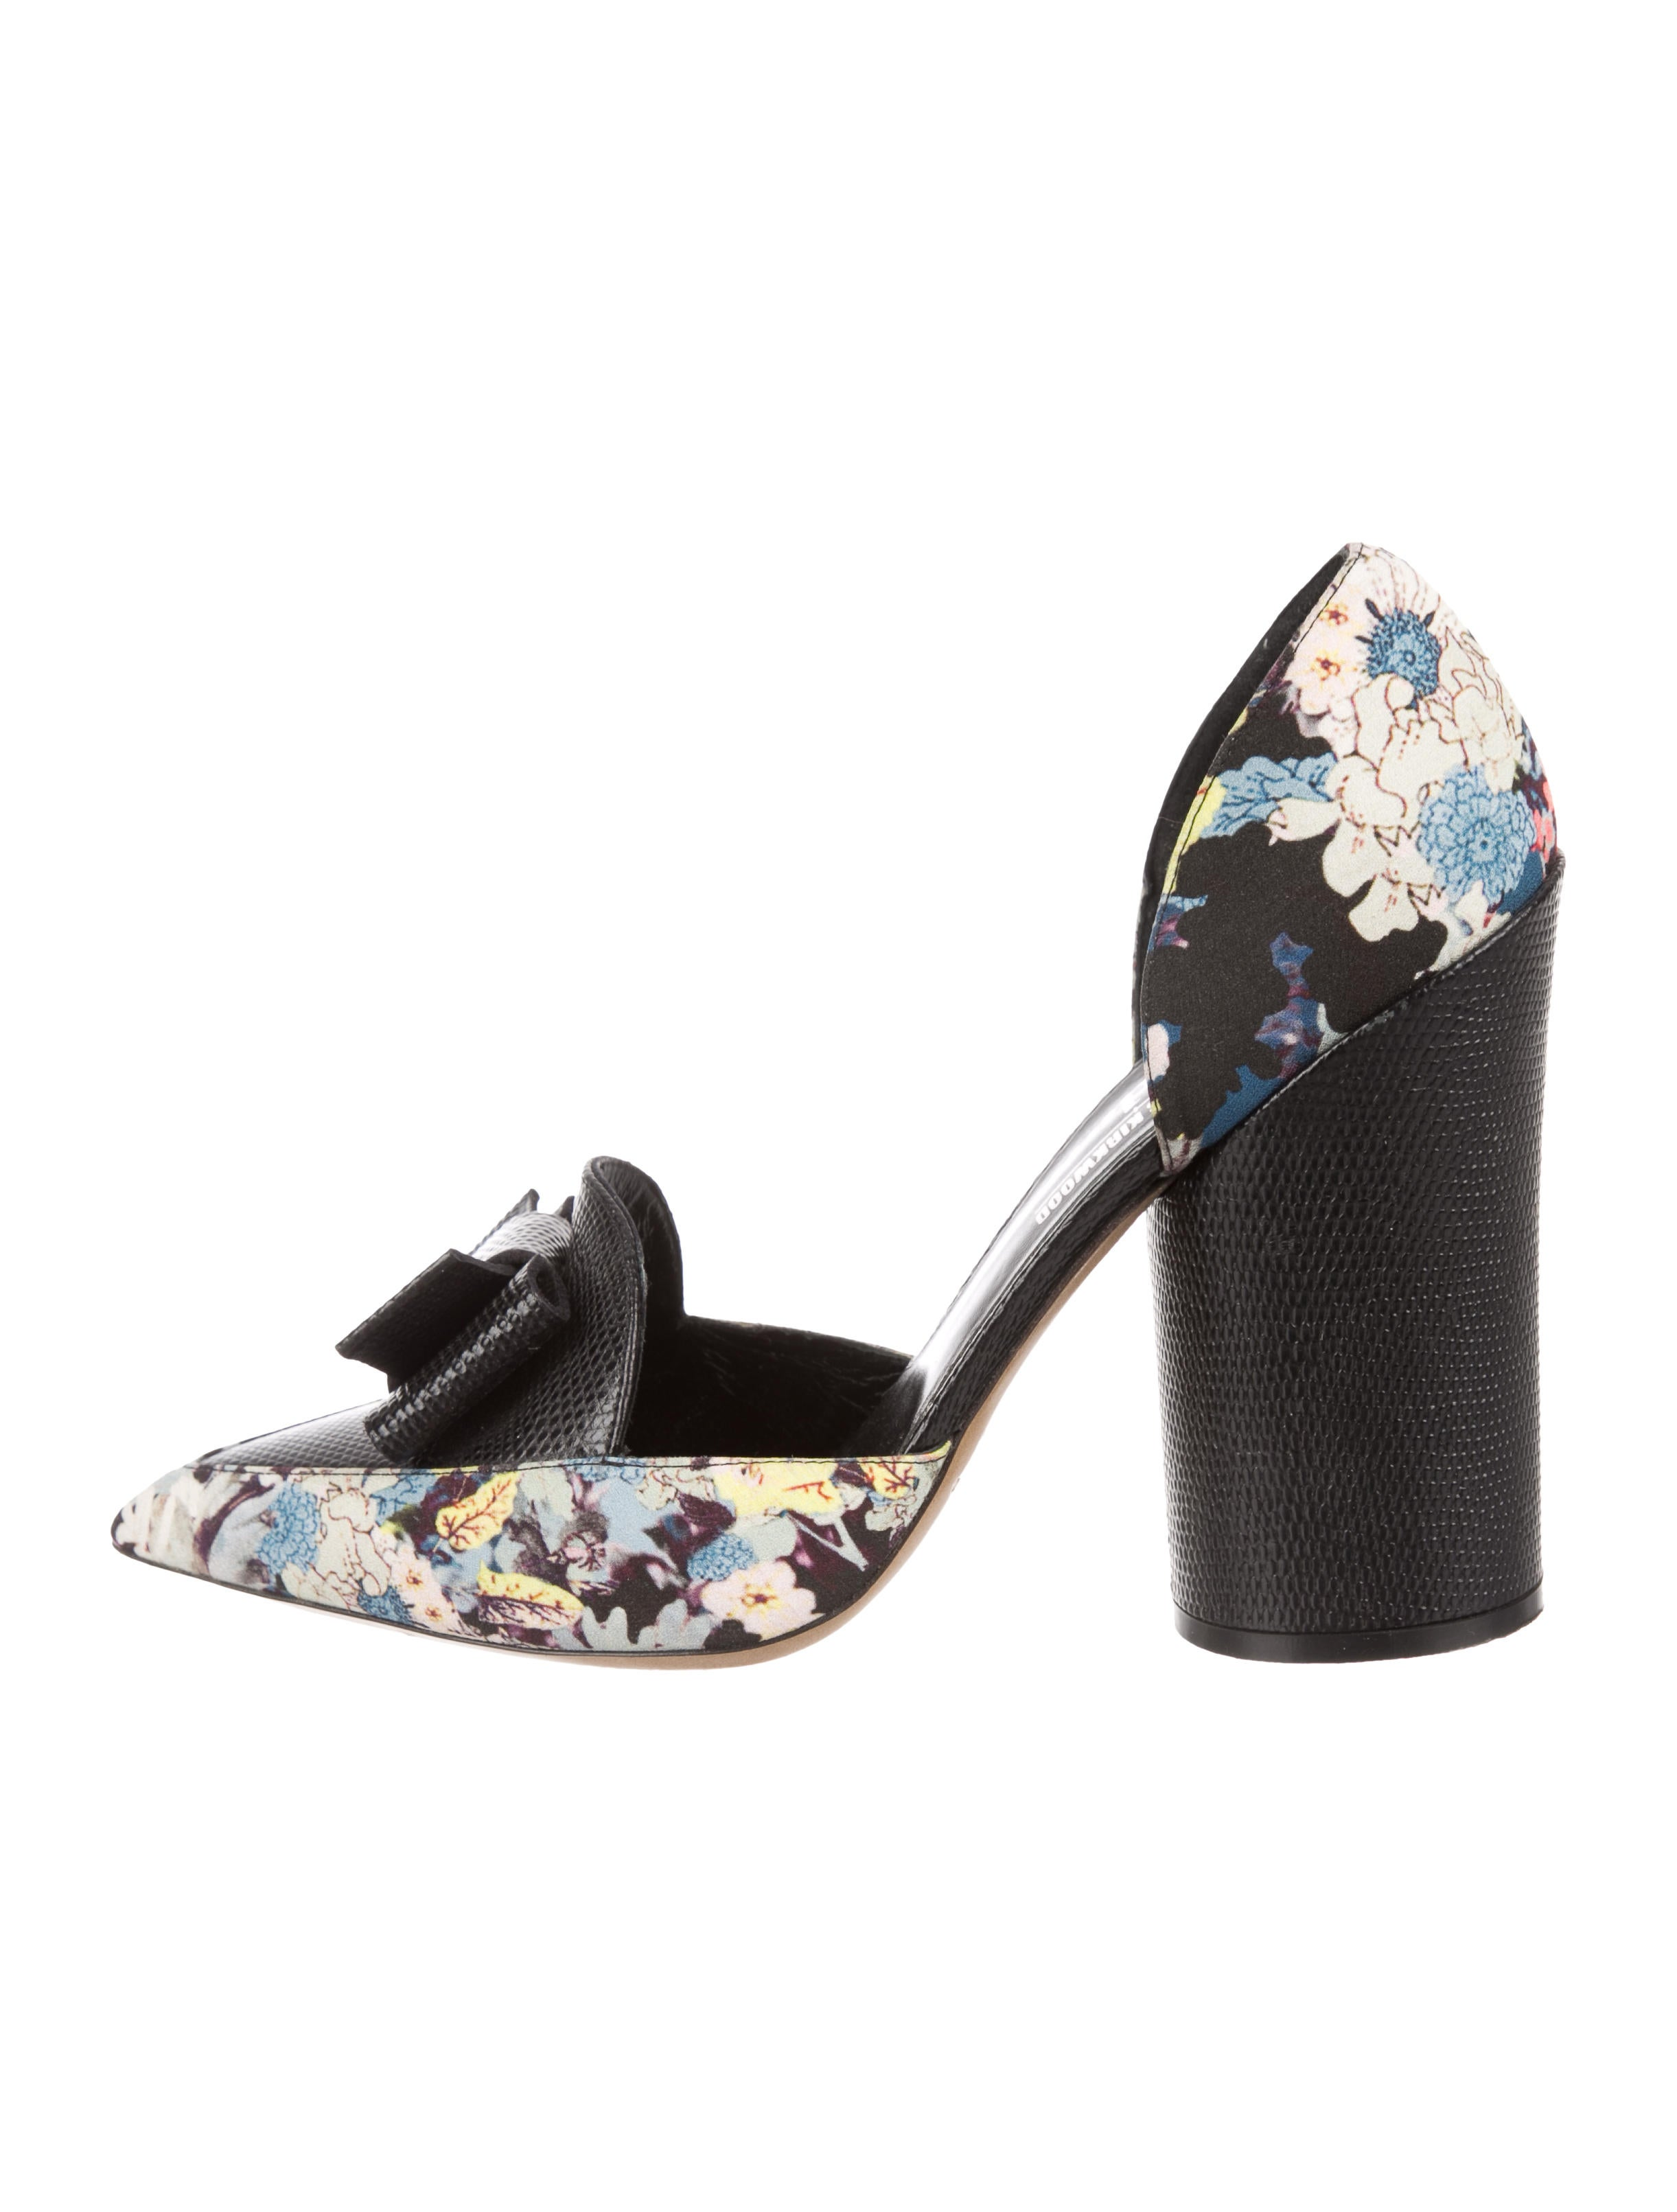 new for sale cheap sale pay with visa Nicholas Kirkwood x Erdem Printed Pointed-Toe Pumps cheap free shipping fashion Style buy cheap pre order eGM5ev